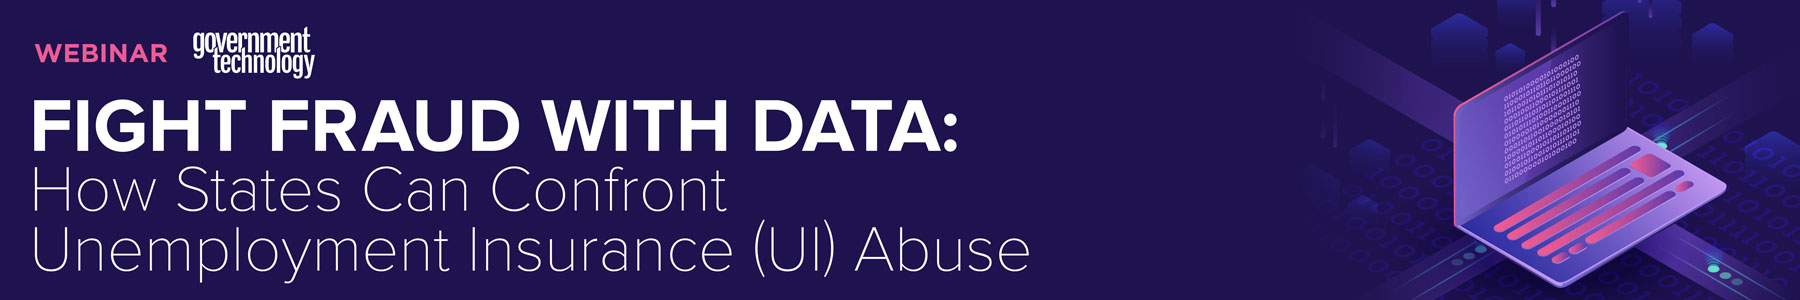 Fight Fraud with Data: How States Can Confront Unemployment Insurance (UI) Abuse